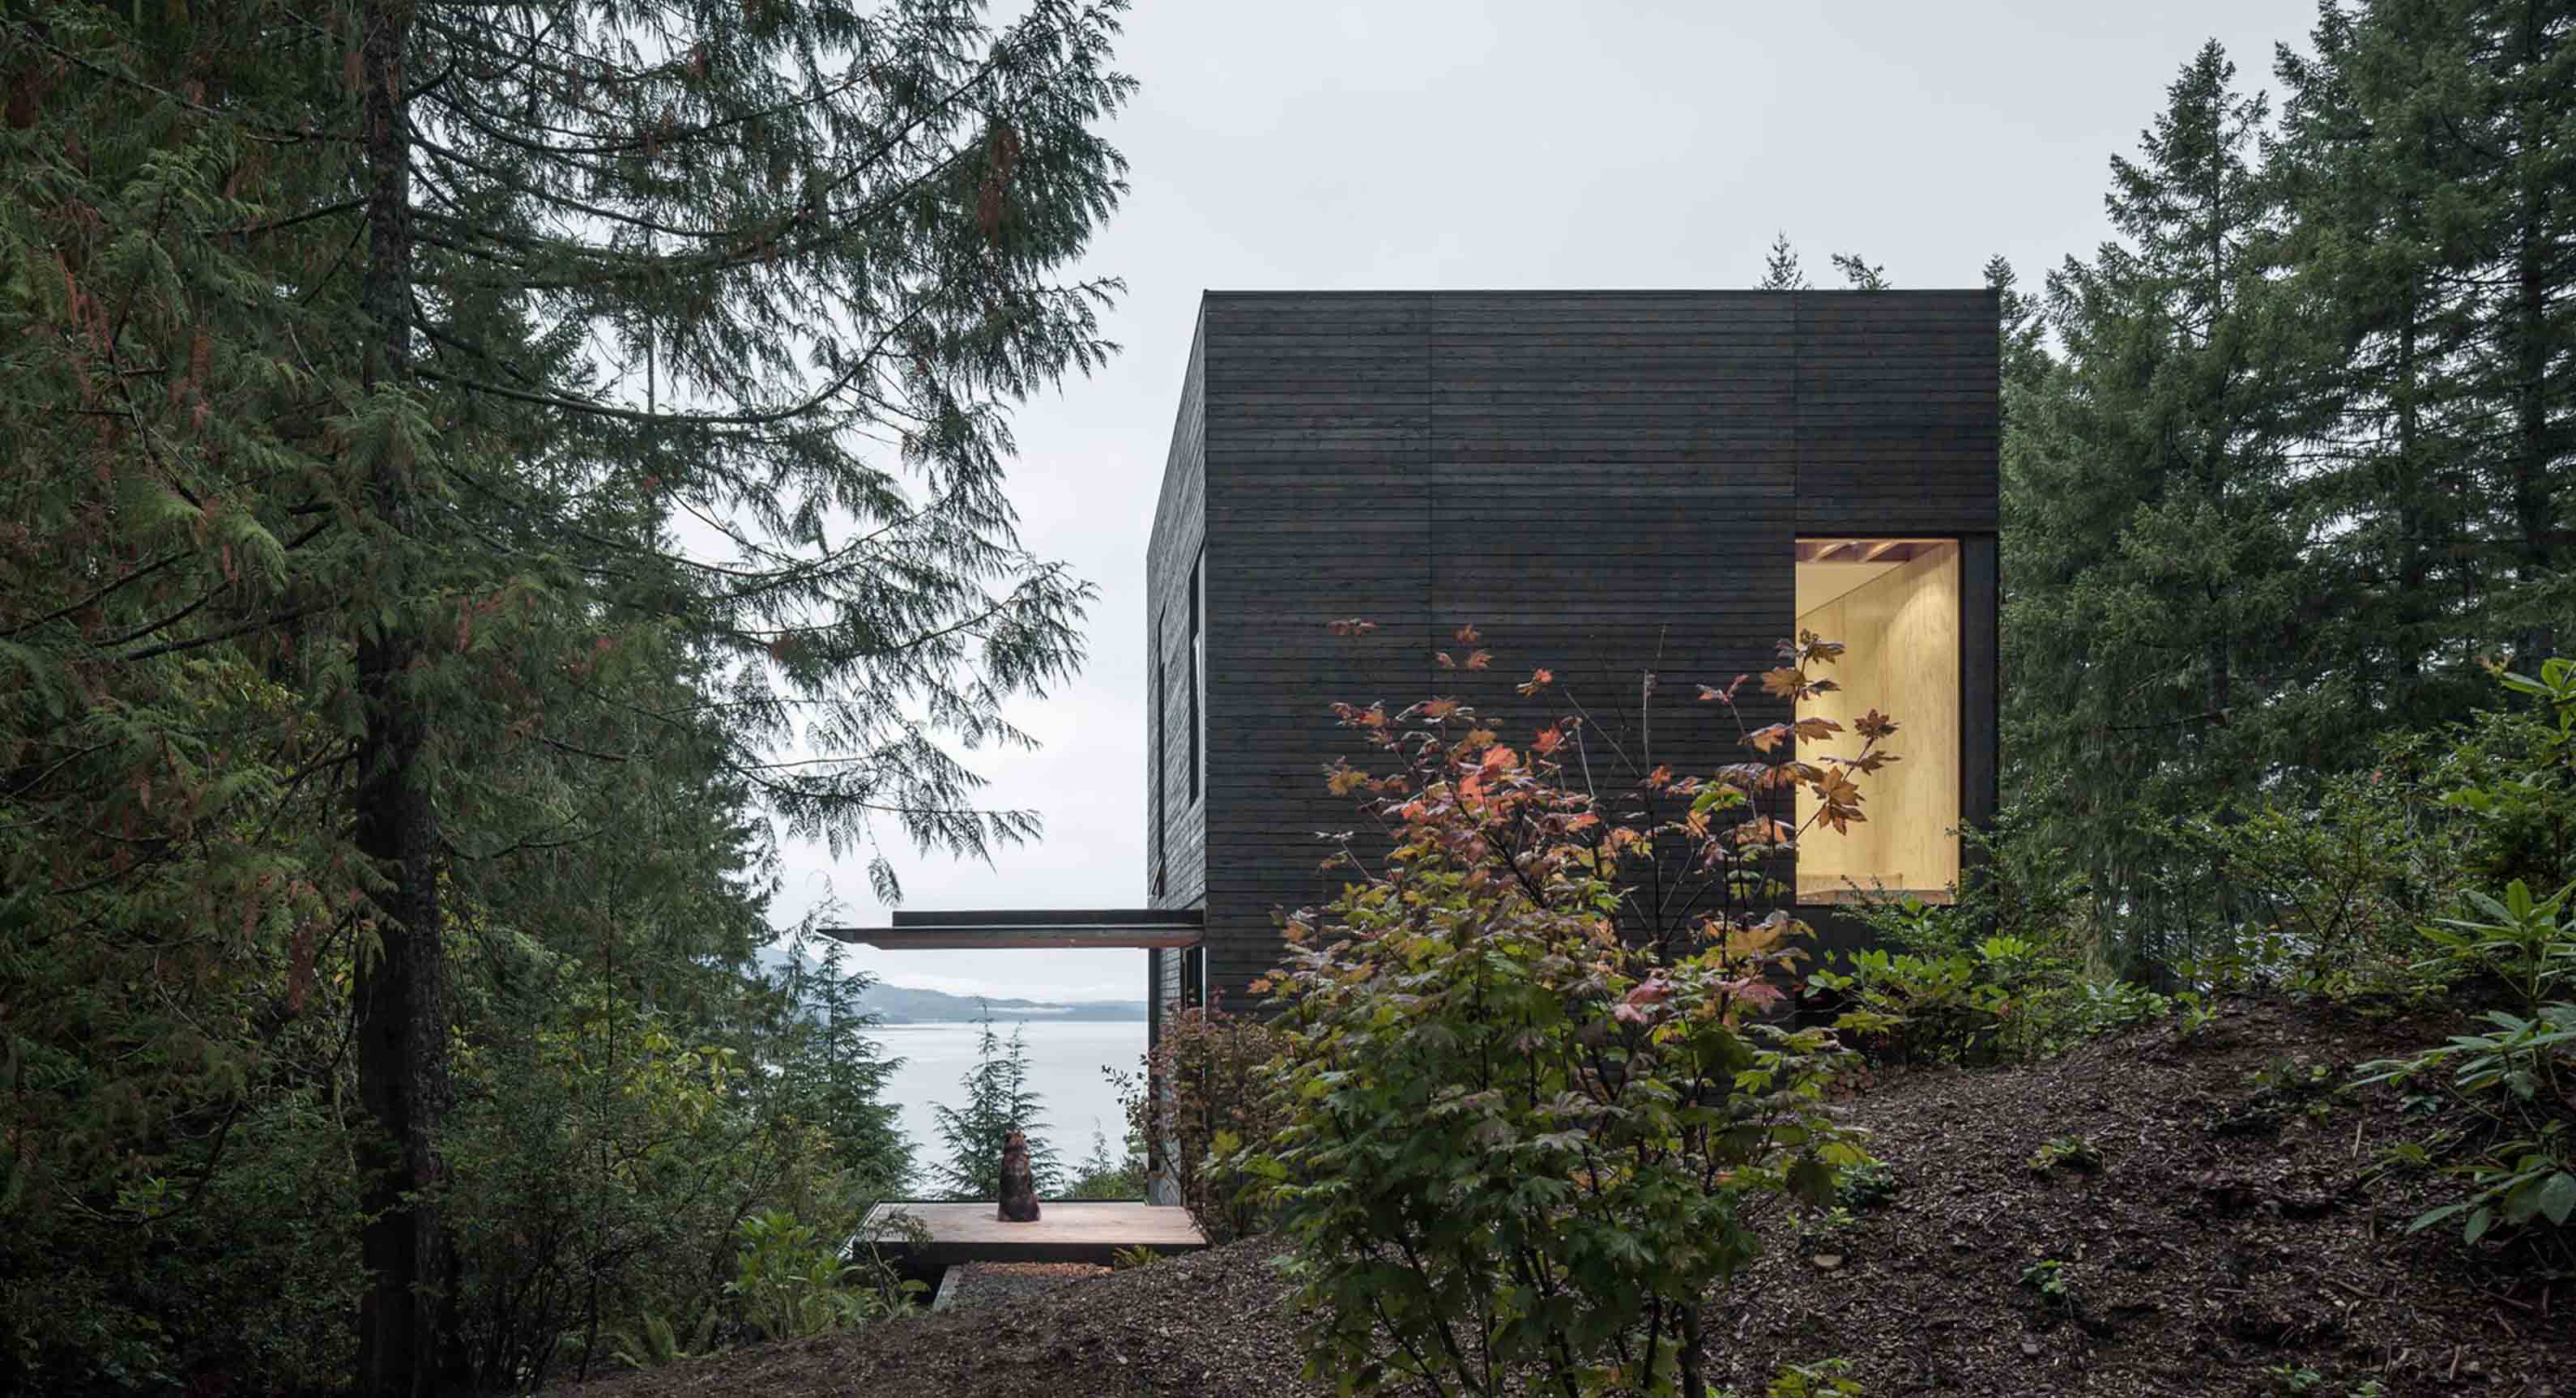 mw|works architecture+design Turn The Little House Into Spectacular Secret Getaway